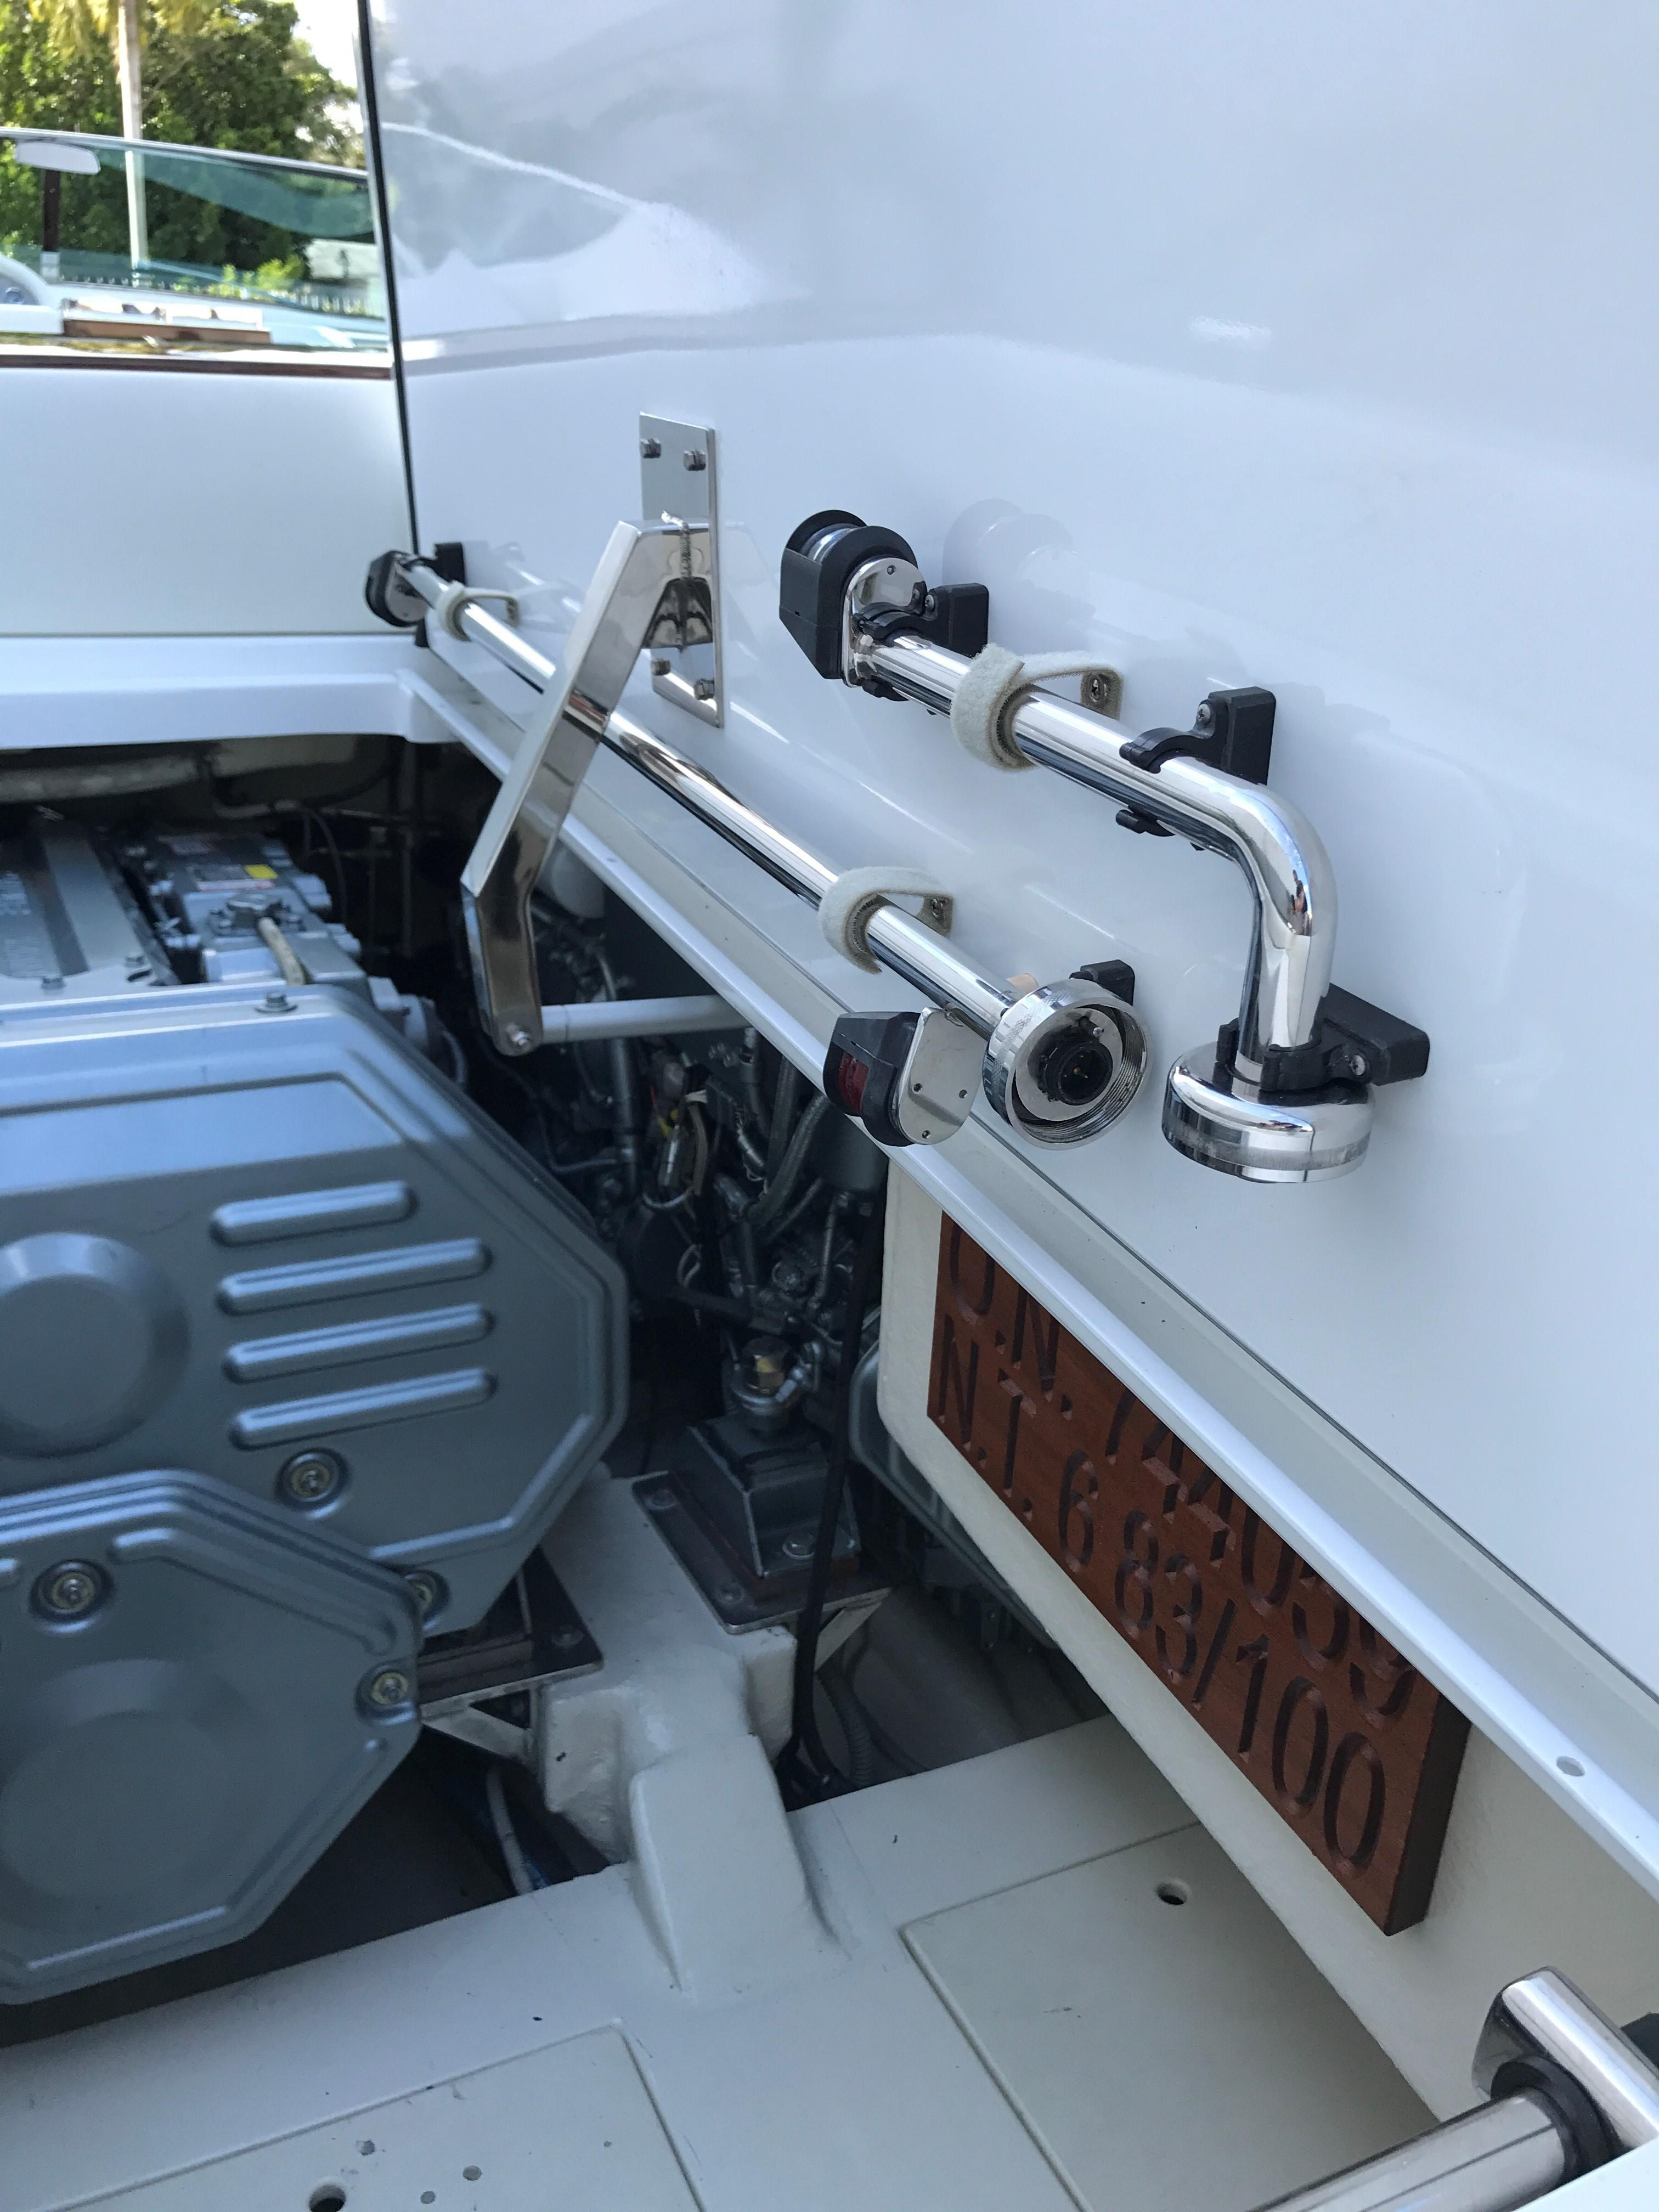 2012 Riva 33 Aquariva Gucci - Engine Hatch Open